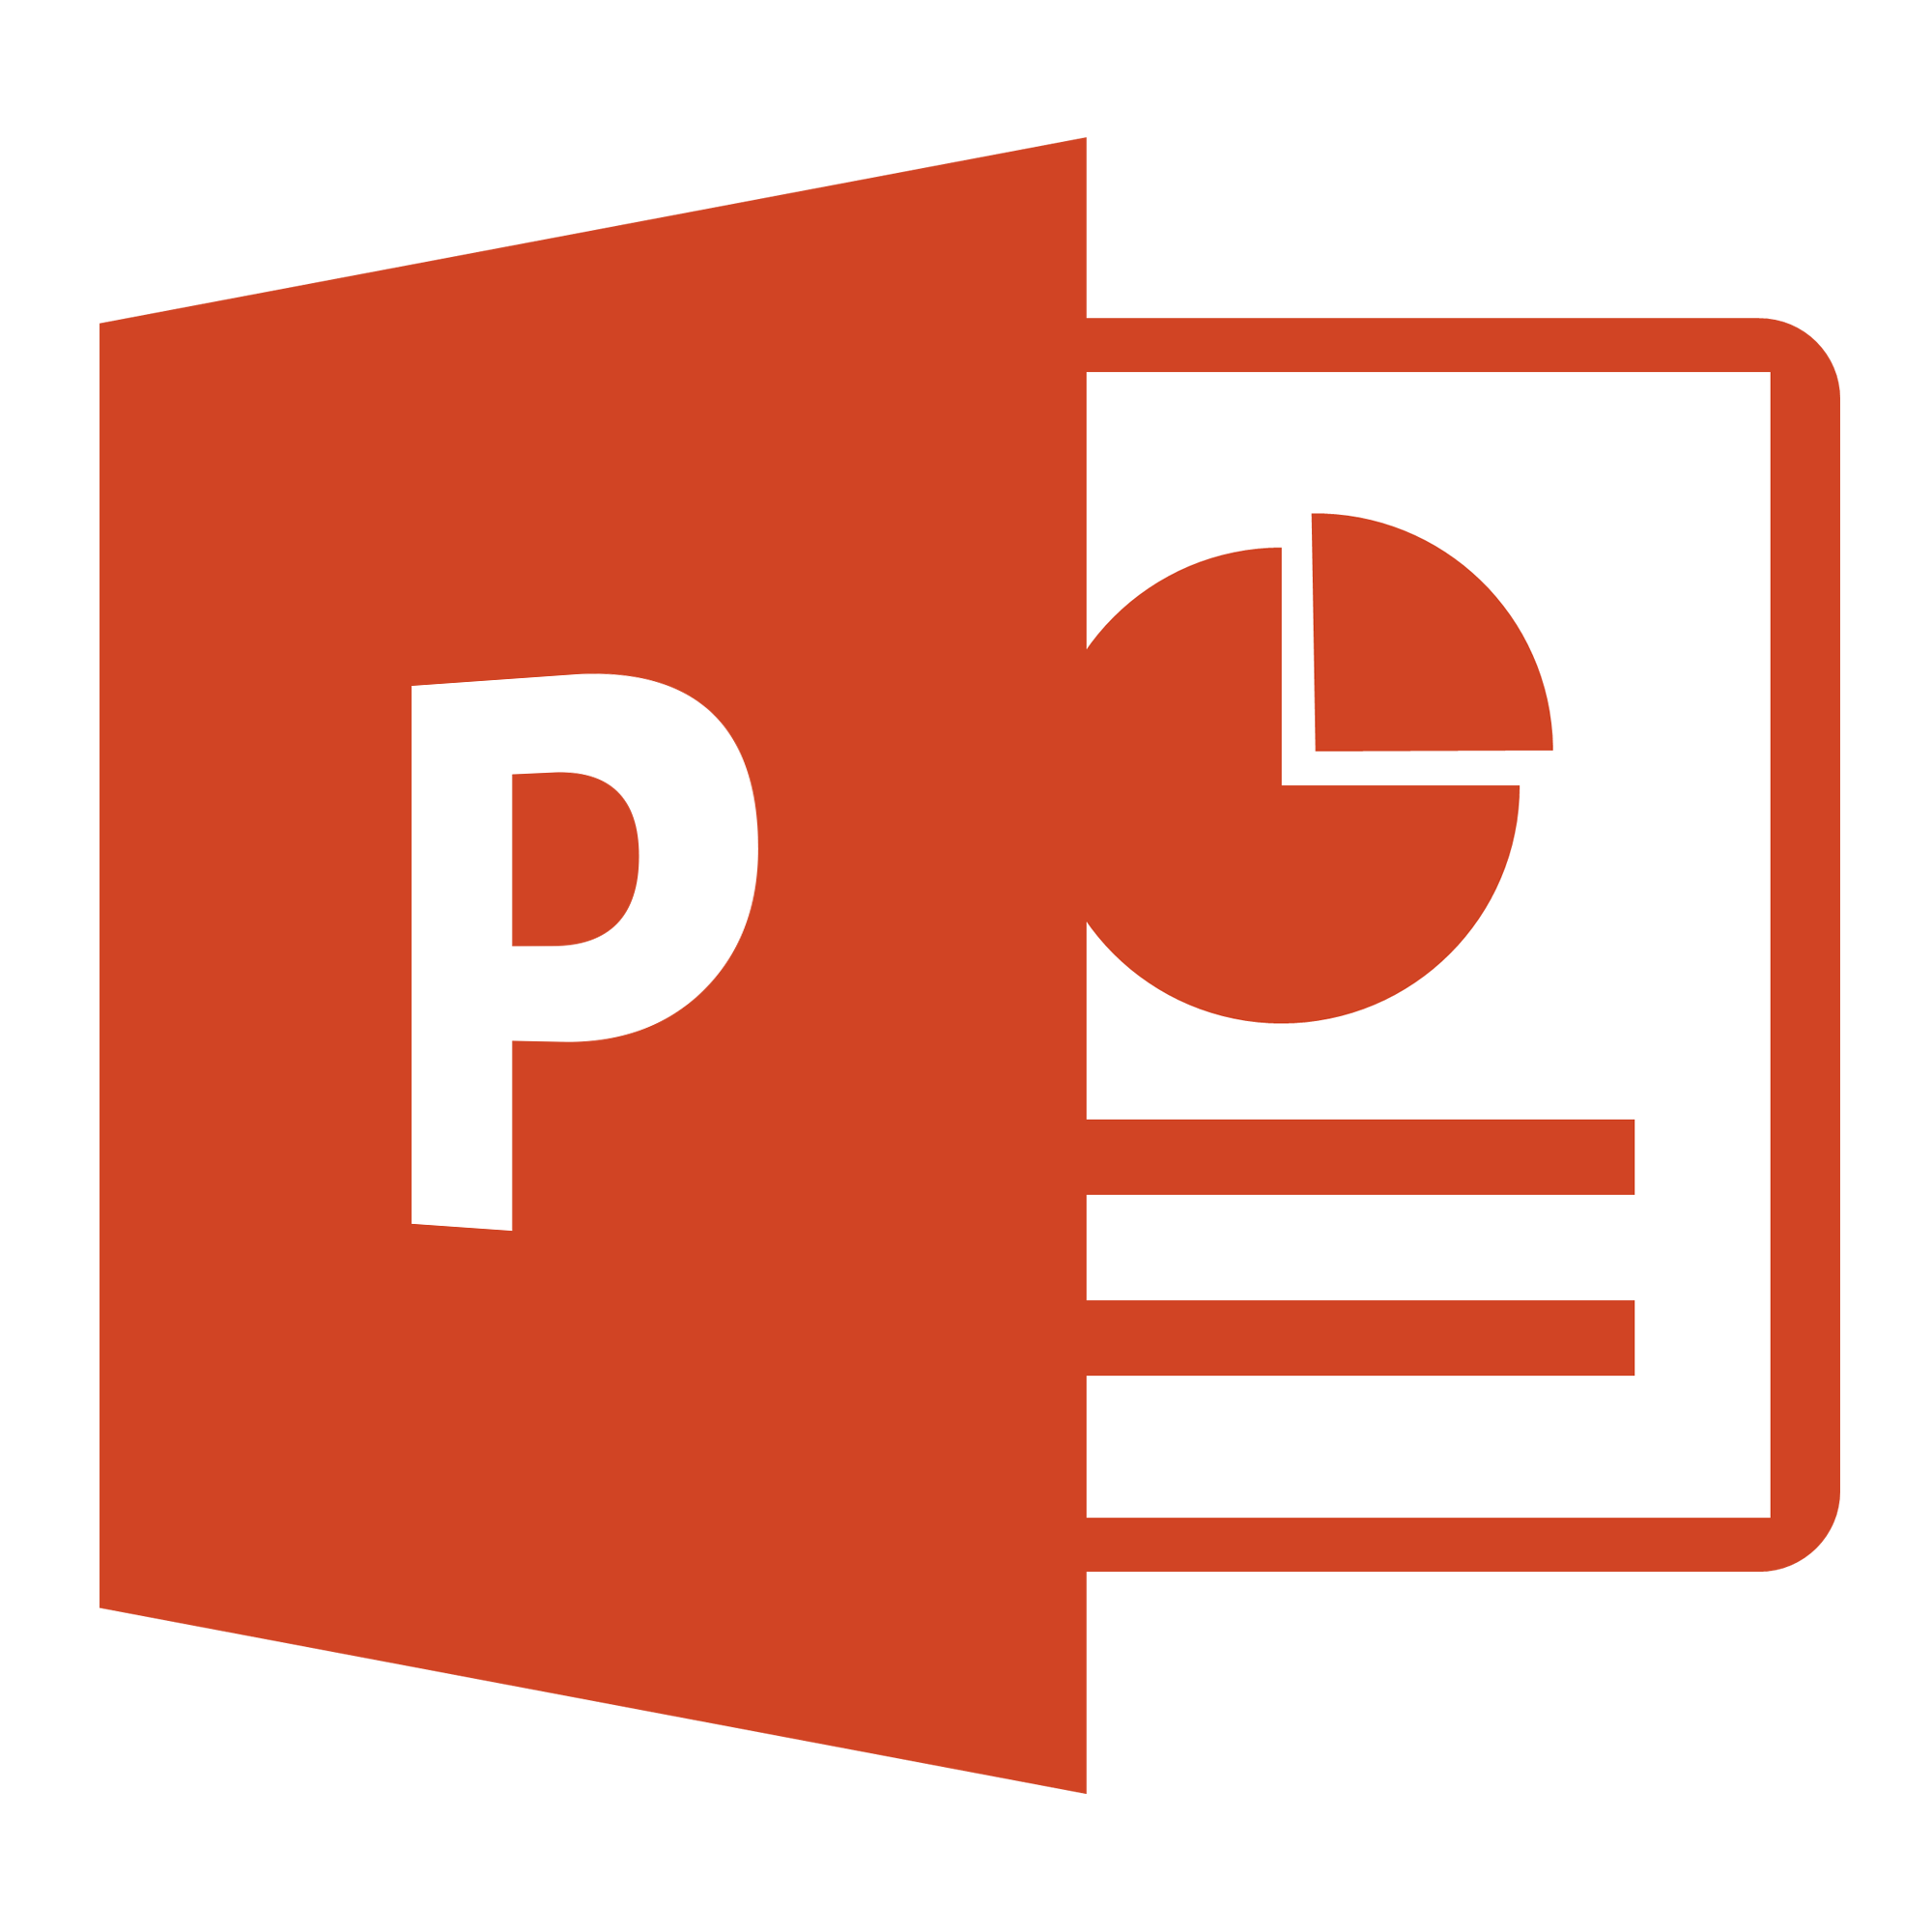 Powerpoint Certification Nyc Powerpoint Certification Classes Exam